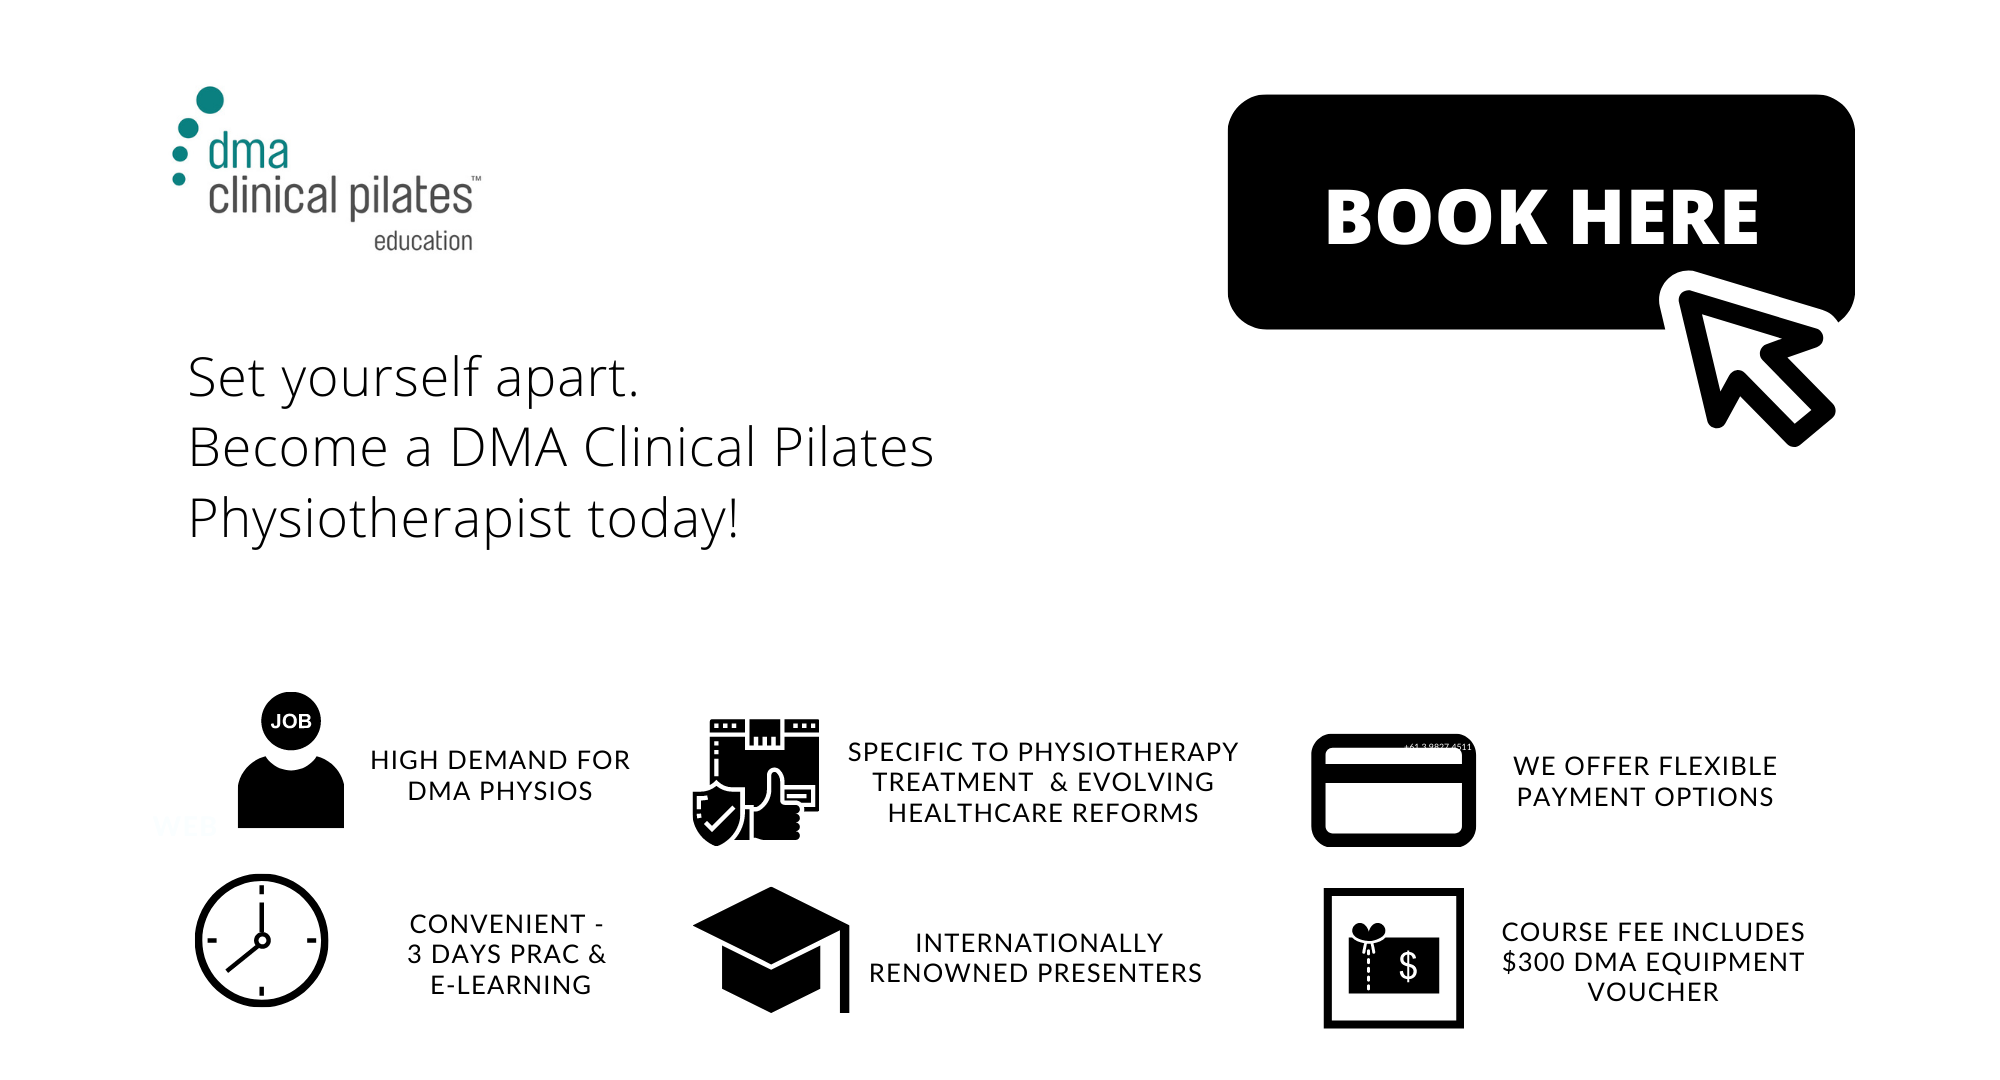 Dma Clinical Pilates Education Courses